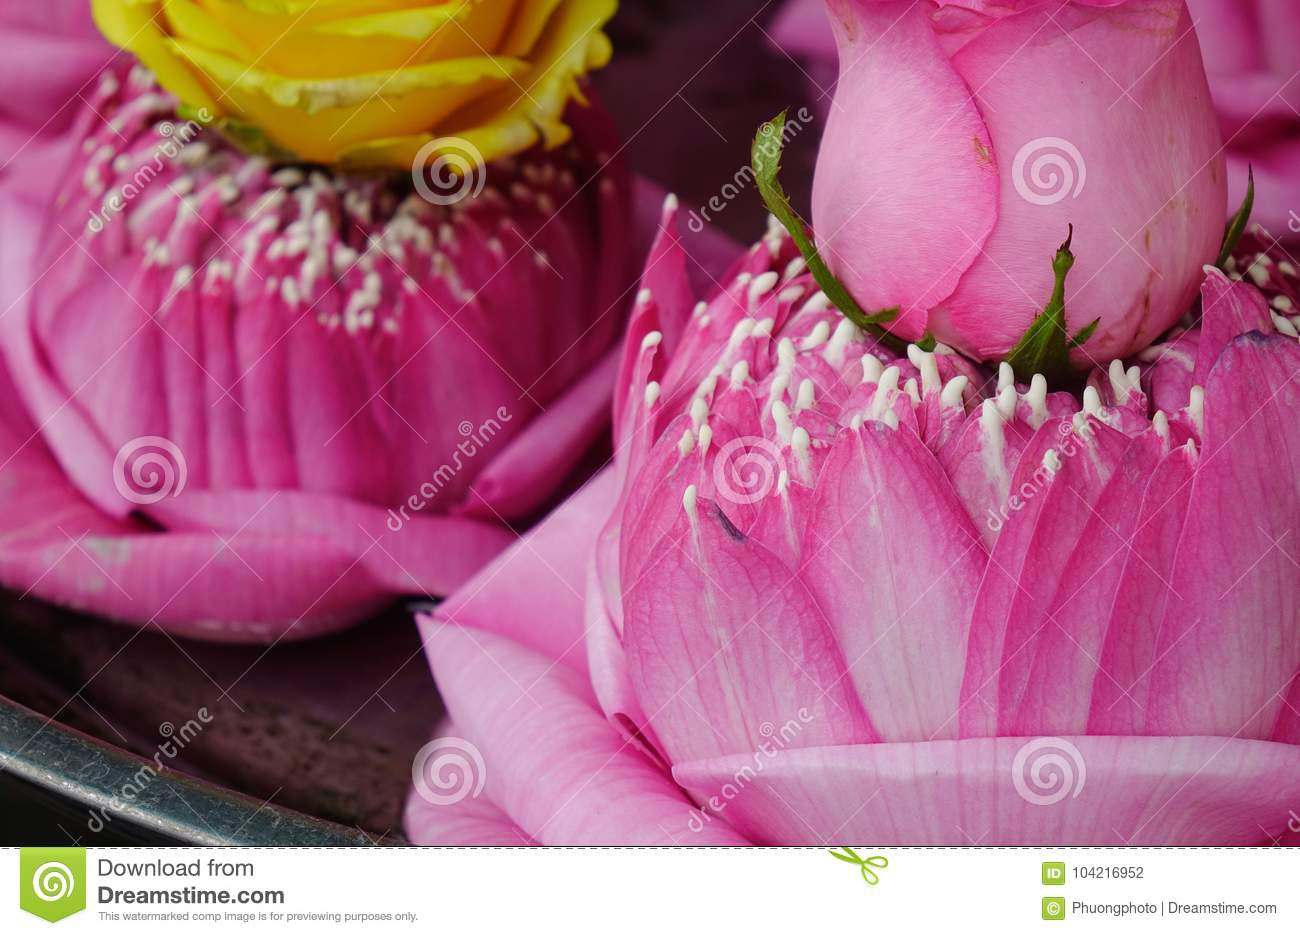 Praying flowers for sale at the temple stock photo image of praying lotus flowers for sale at a hindu temple in bangkok thailand izmirmasajfo